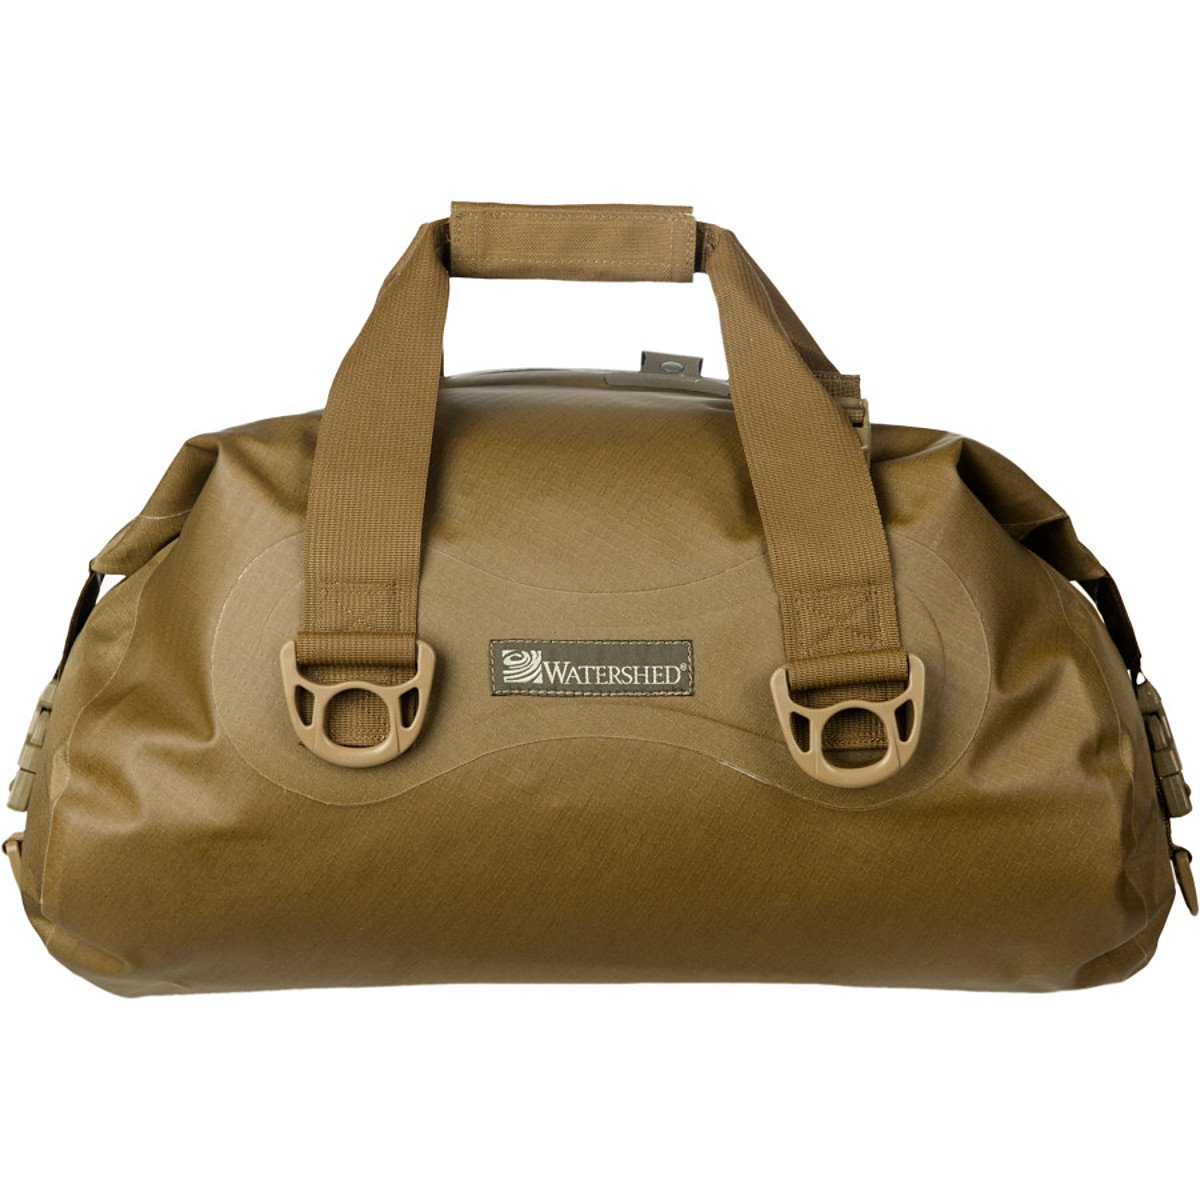 Watershed Chattooga Dry Bag - 1800cu in Coyote, One Size